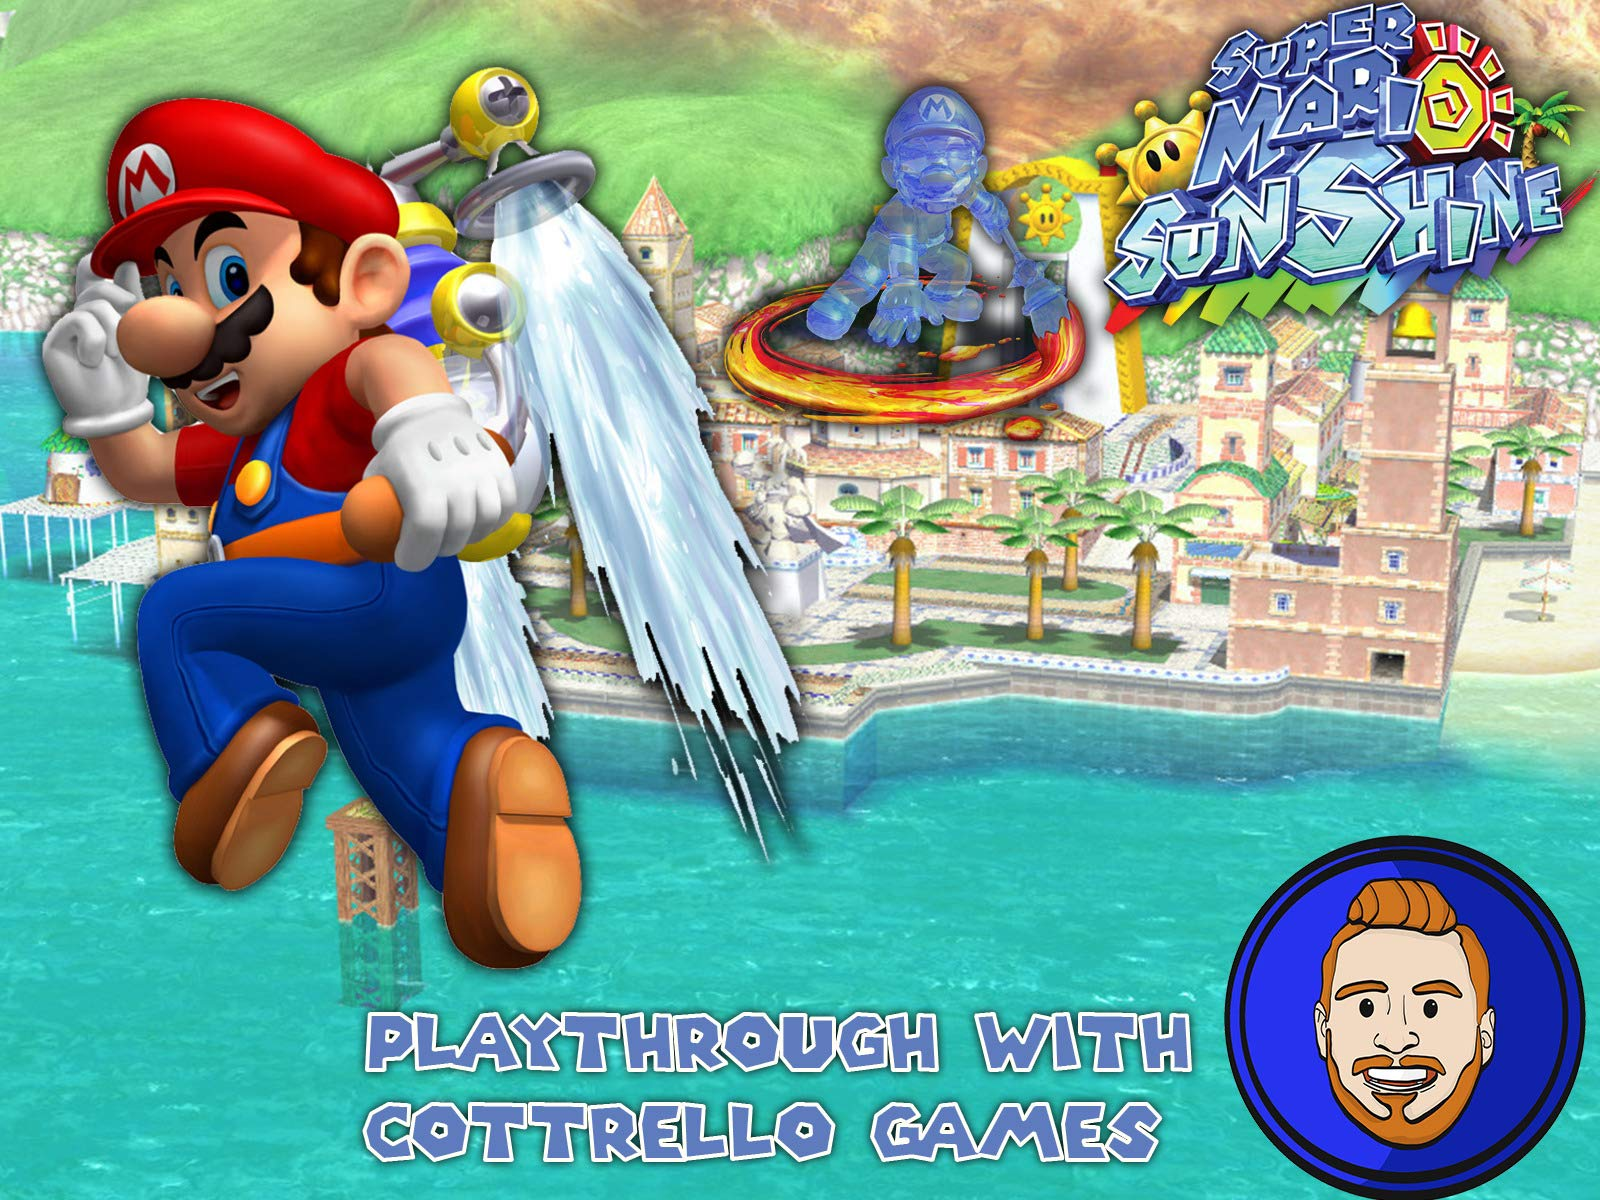 Super Mario Sunshine Playthrough with Cottrello Games